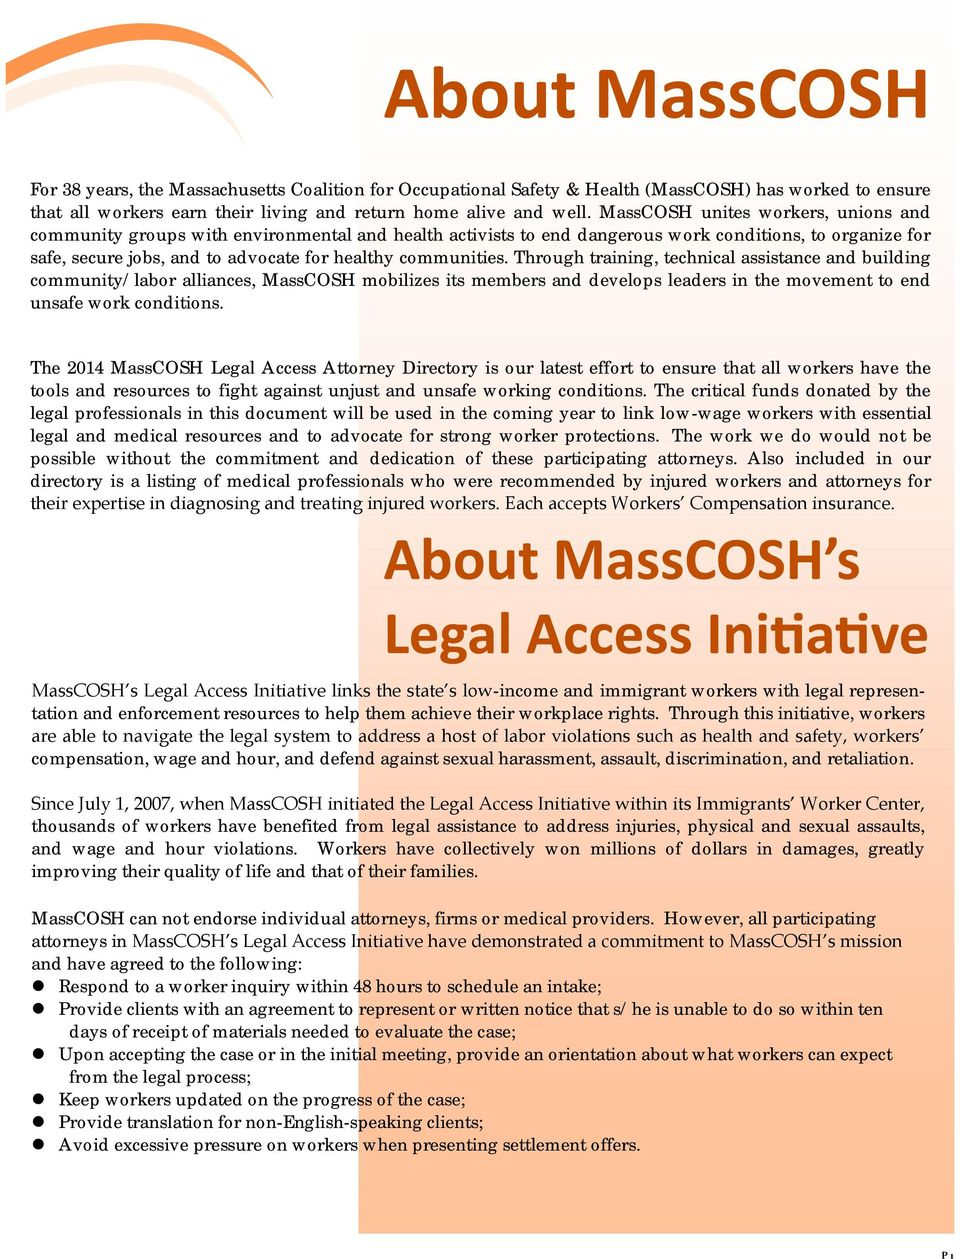 communities. Through training, technical assistance and building community/labor alliances, MassCOSH mobilizes its members and develops leaders in the movement to end unsafe work conditions.